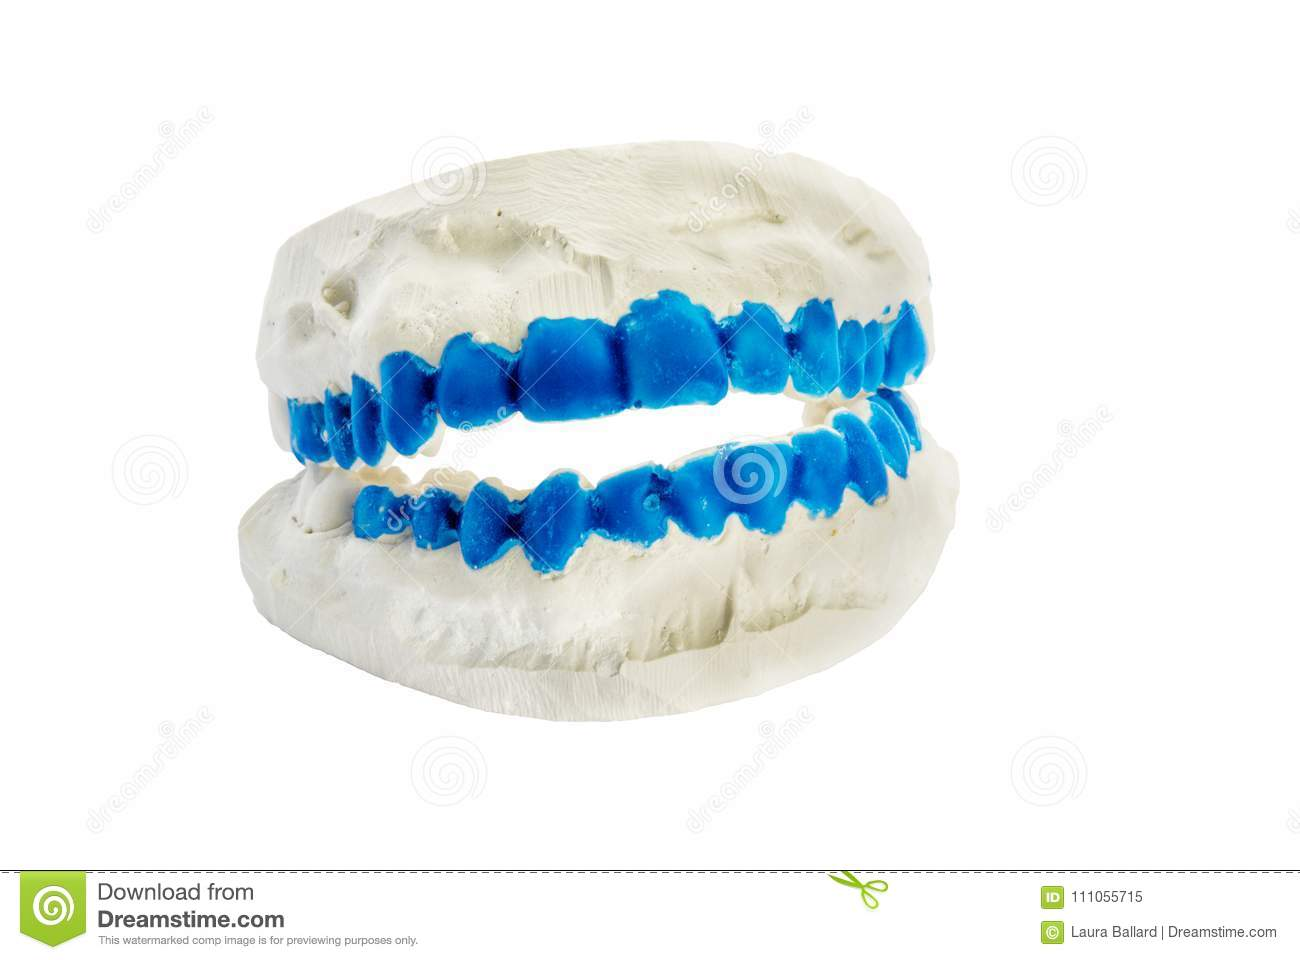 Plaster Dental Mold With Blue Painted Teeth Stock Image - Image of